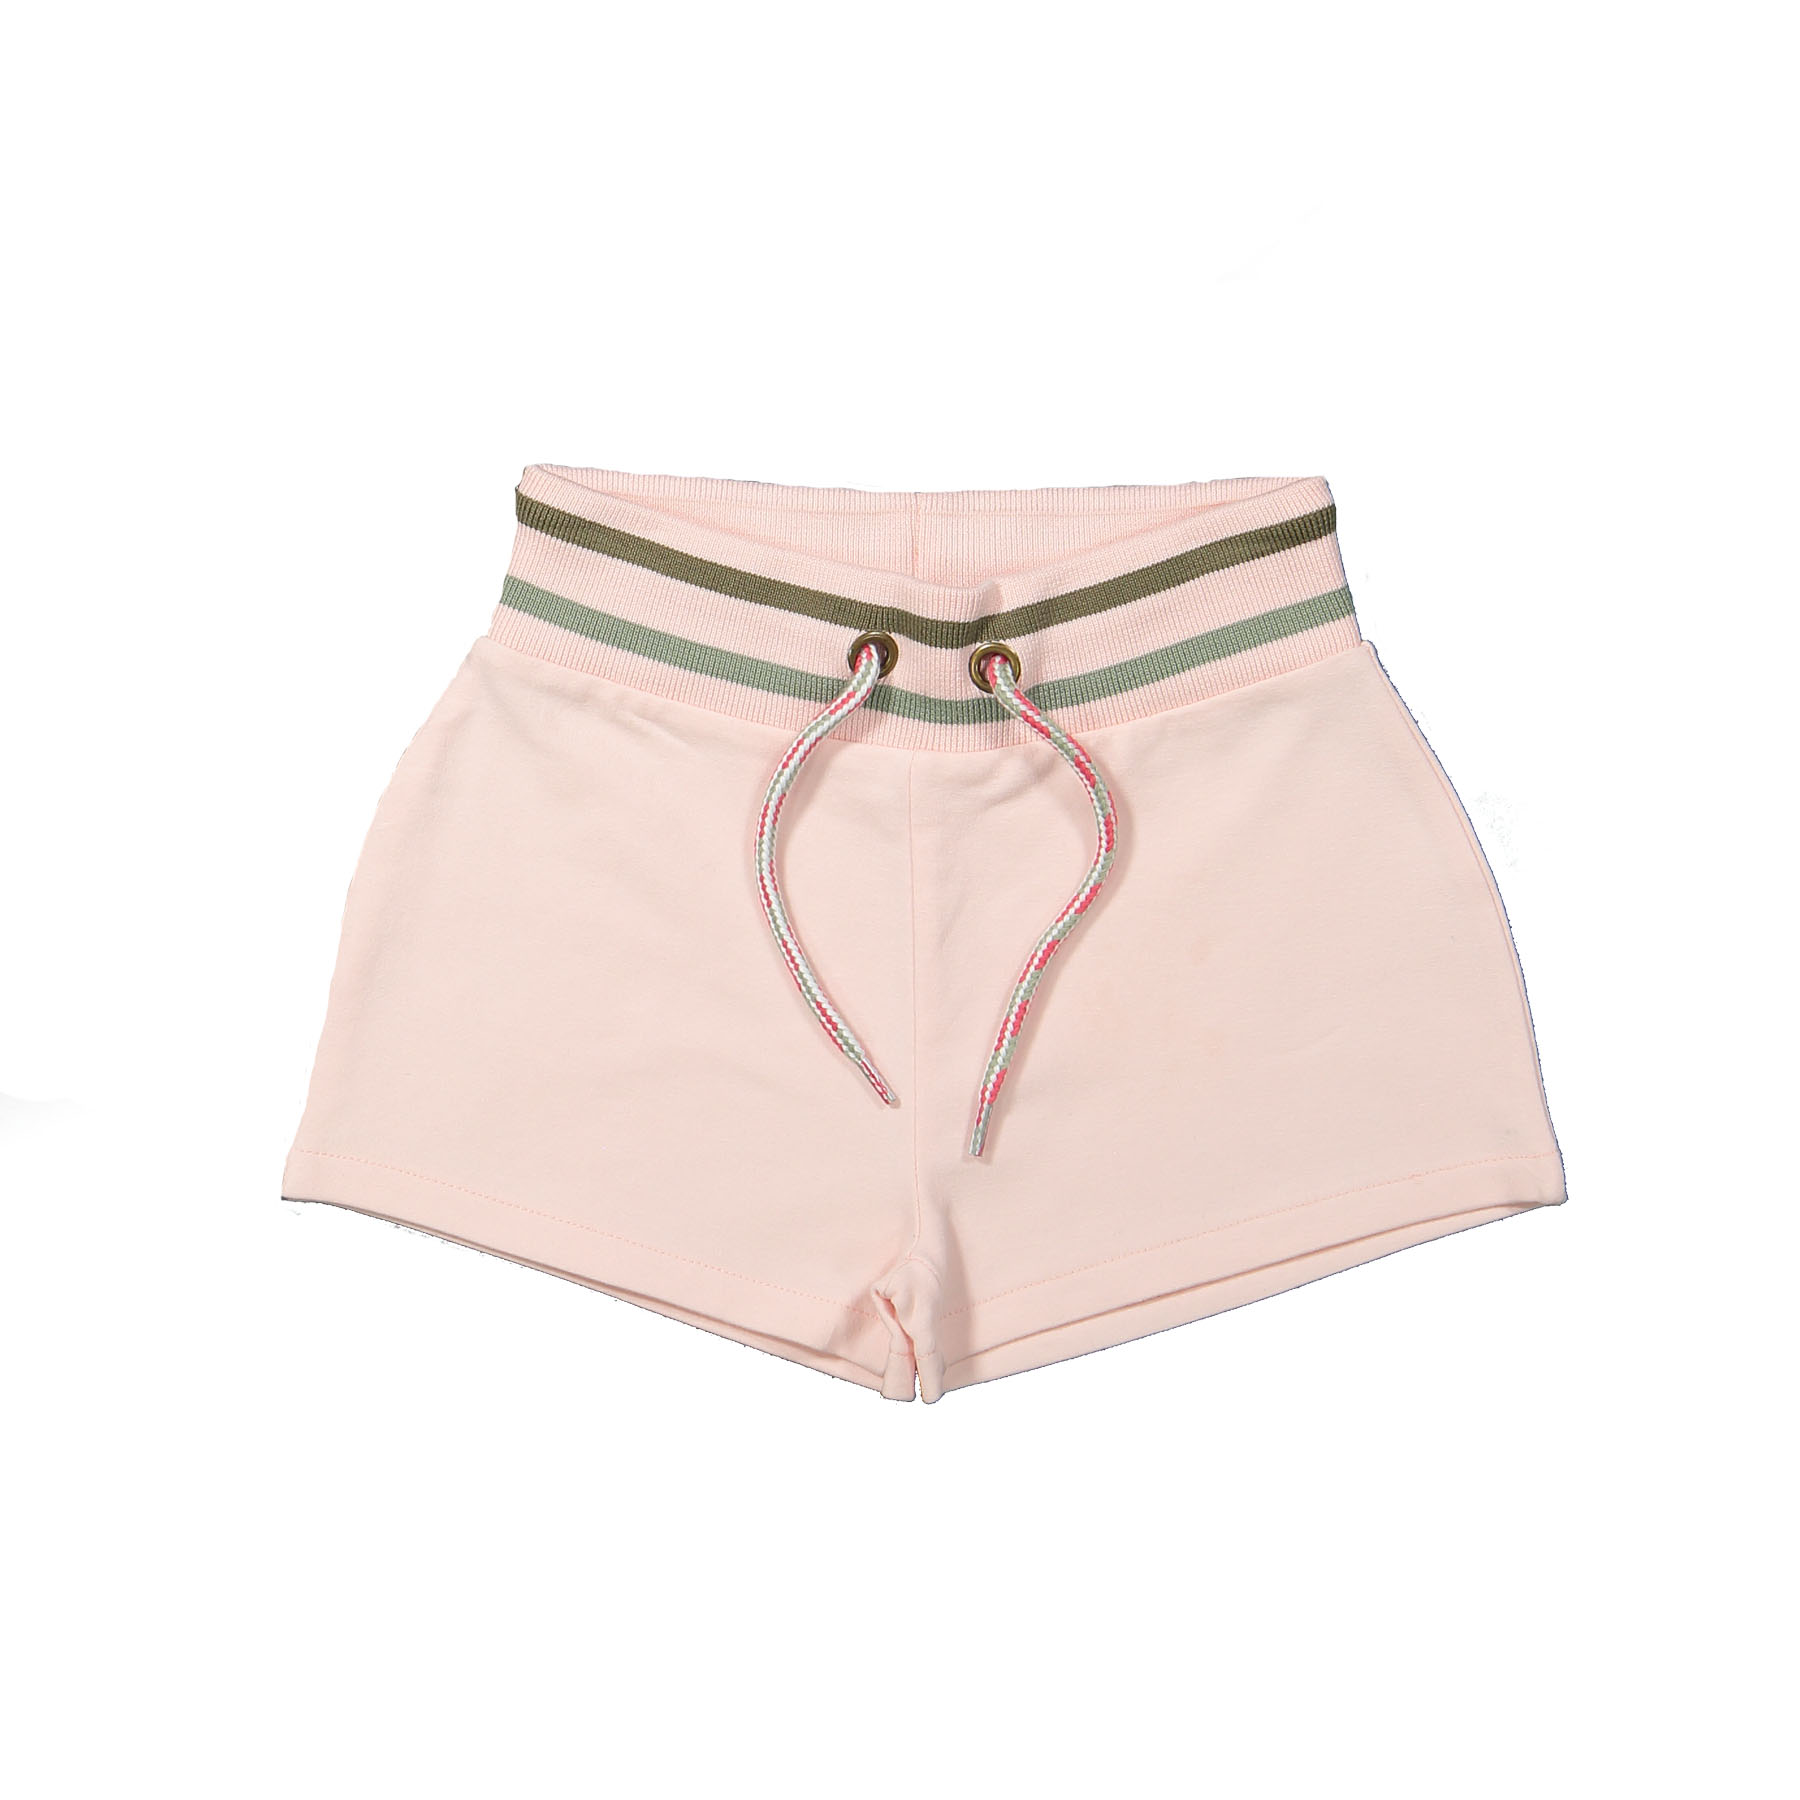 DJ Dutch Jeans short faded light pink